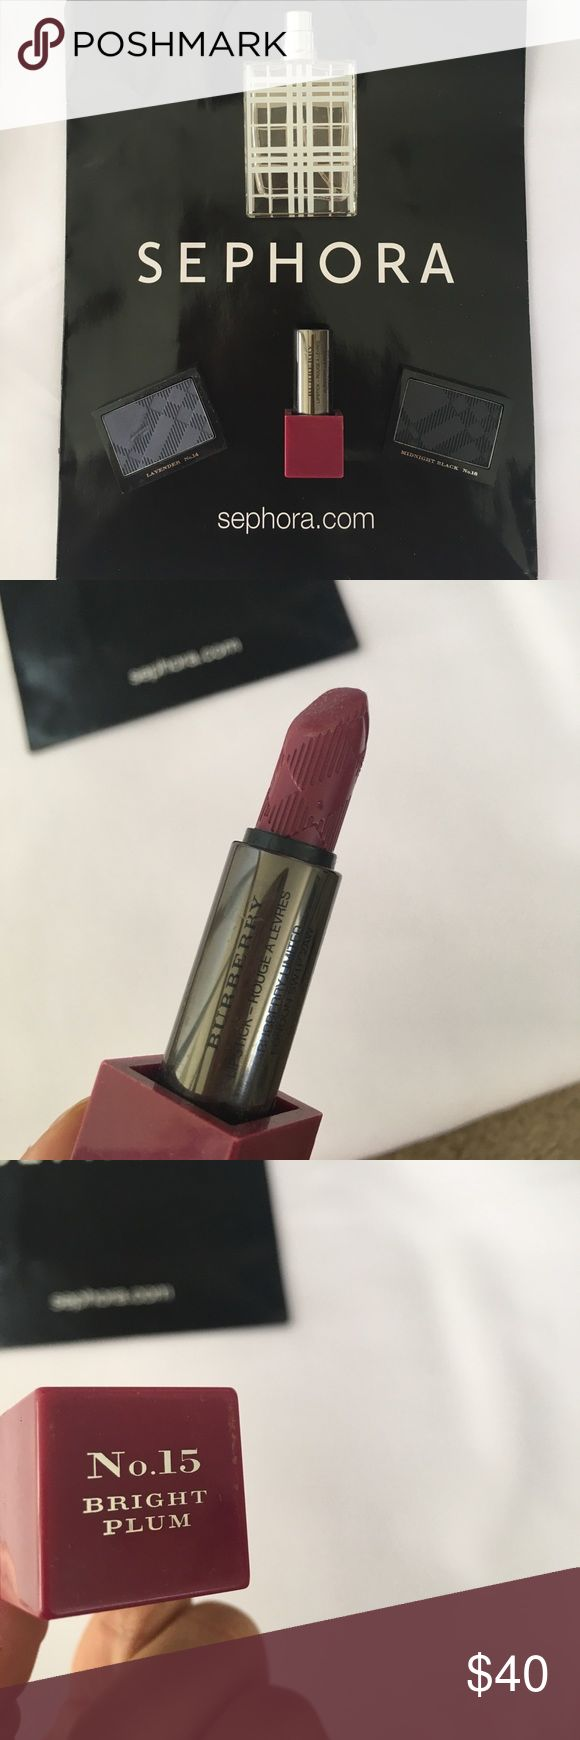 Burberry Brit Perfume Lipstick Eyeshadow Sephora Burberry Brit Parfum Eau De toilette half full. Burberry Eyeshadow in Lavender #14 and Midnight Black #18. Lipstick is Bright Plum #14 tried once with lip brush 100% full. Eyeshadows are new in package. Offers Welcome Sephora Makeup Lipstick